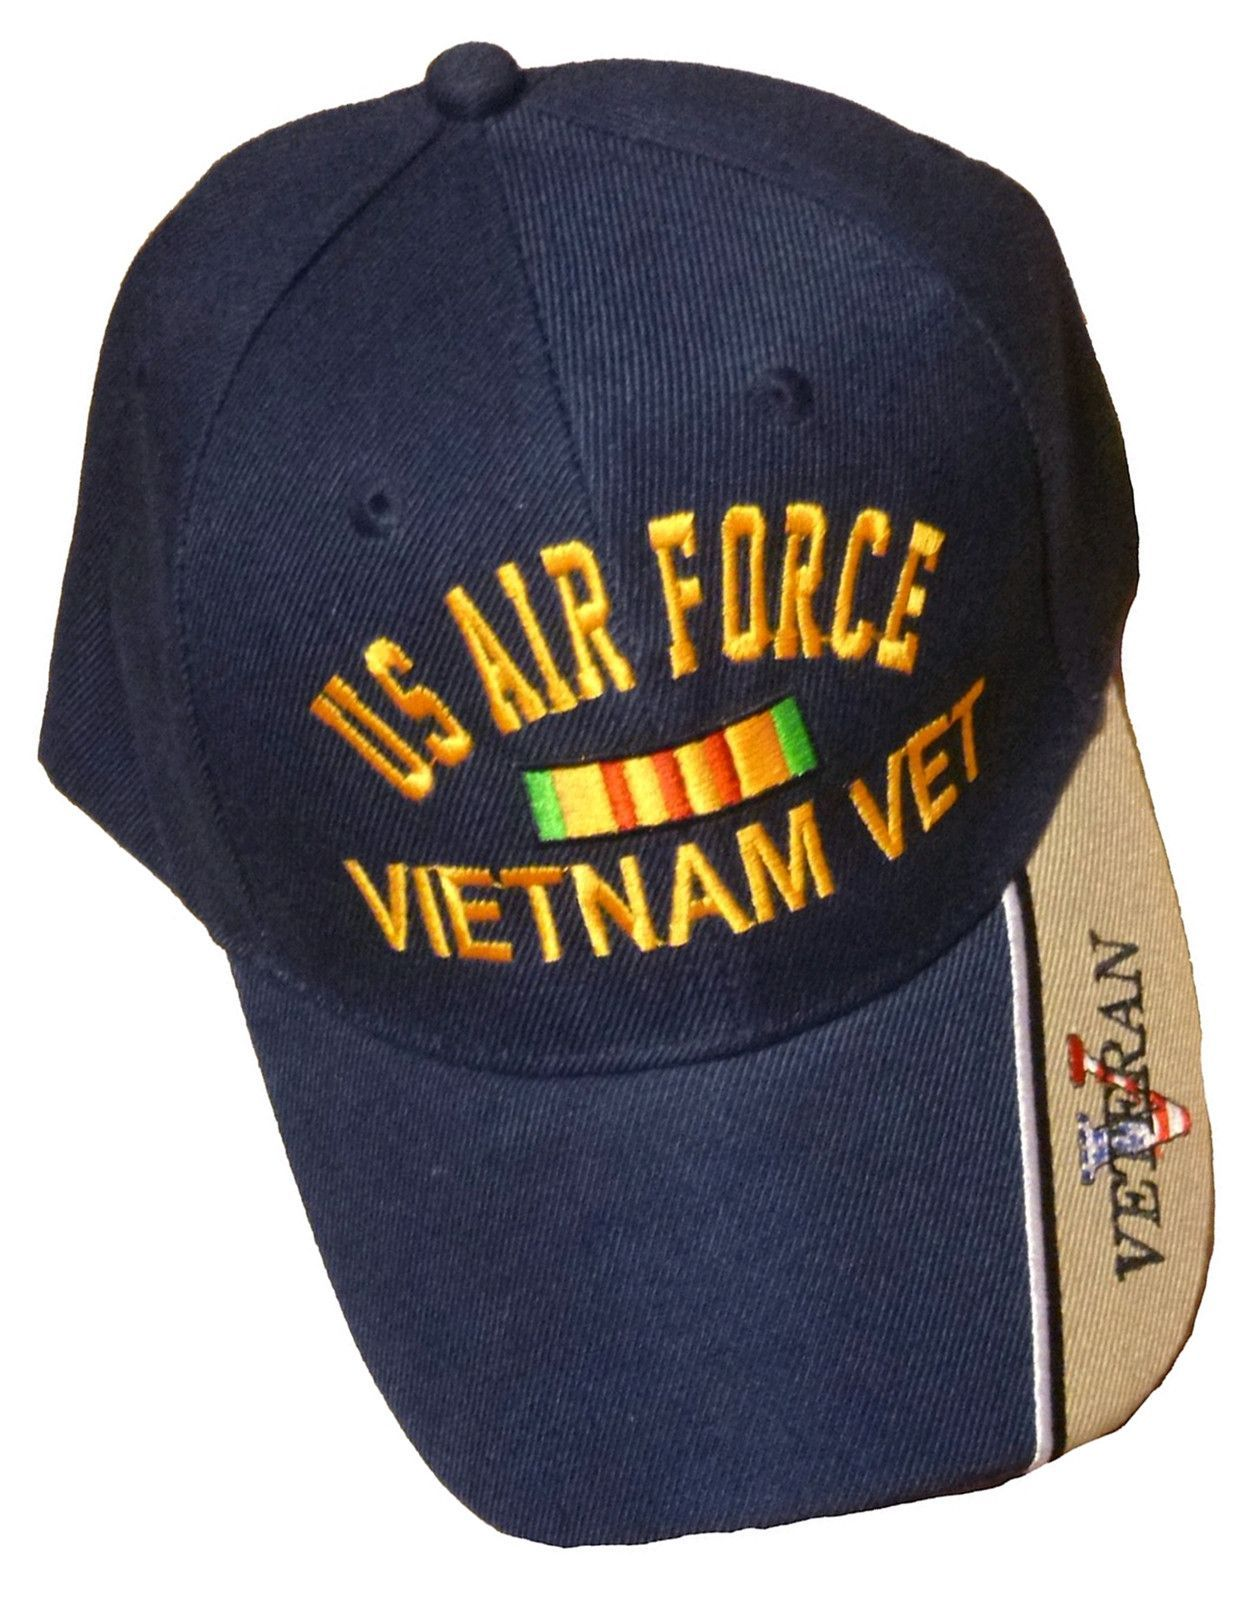 02acf15b00b US Air Force Vietnam Vet Baseball Cap Blue and Tan Embroidered Military  Logo Veteran Hat